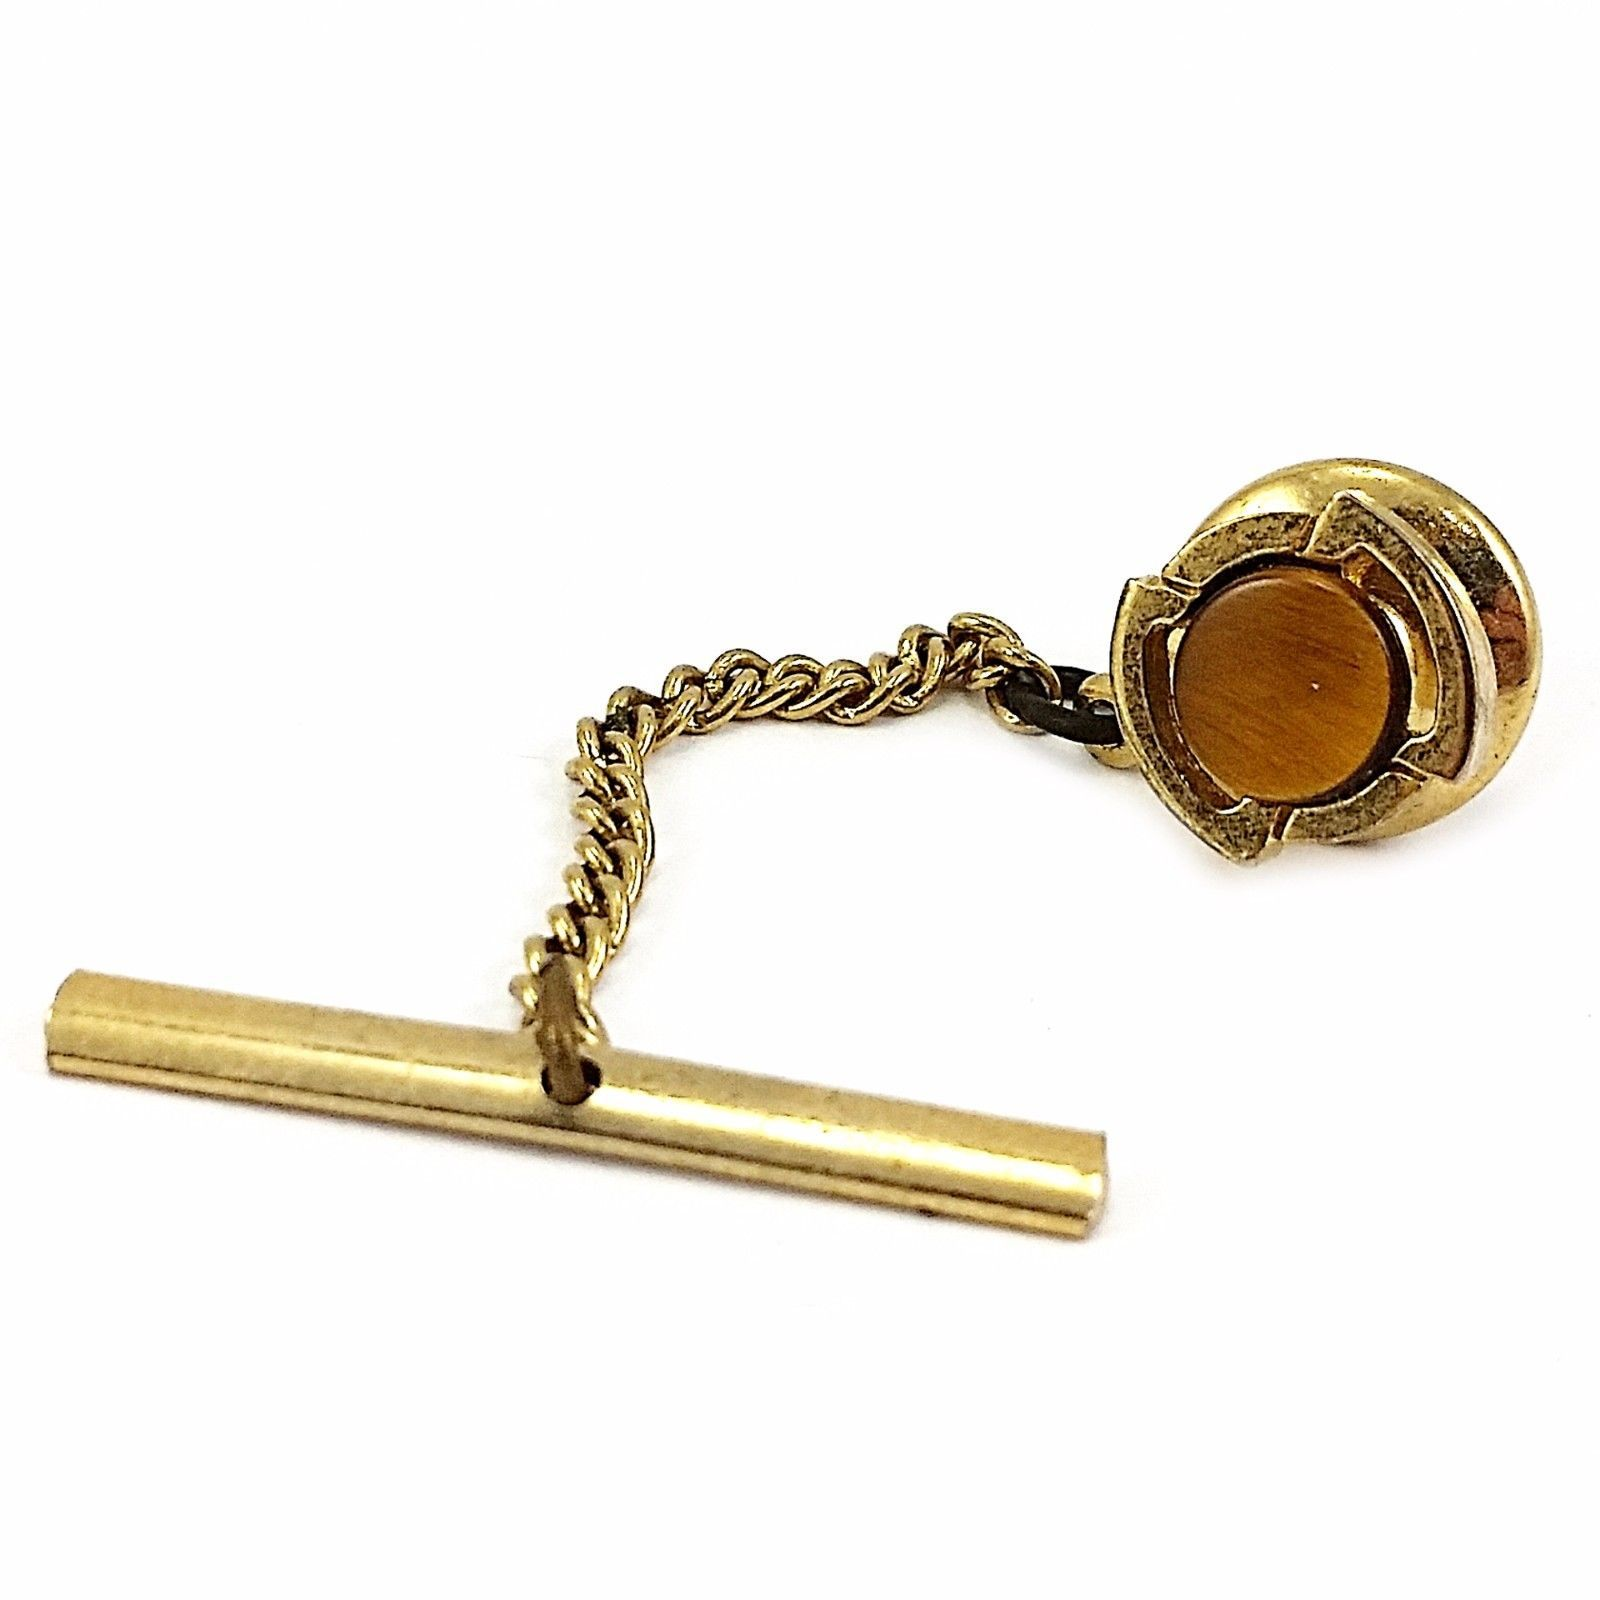 Tigers Eye Tie Tack Vintage Round Gold Tone Business c152